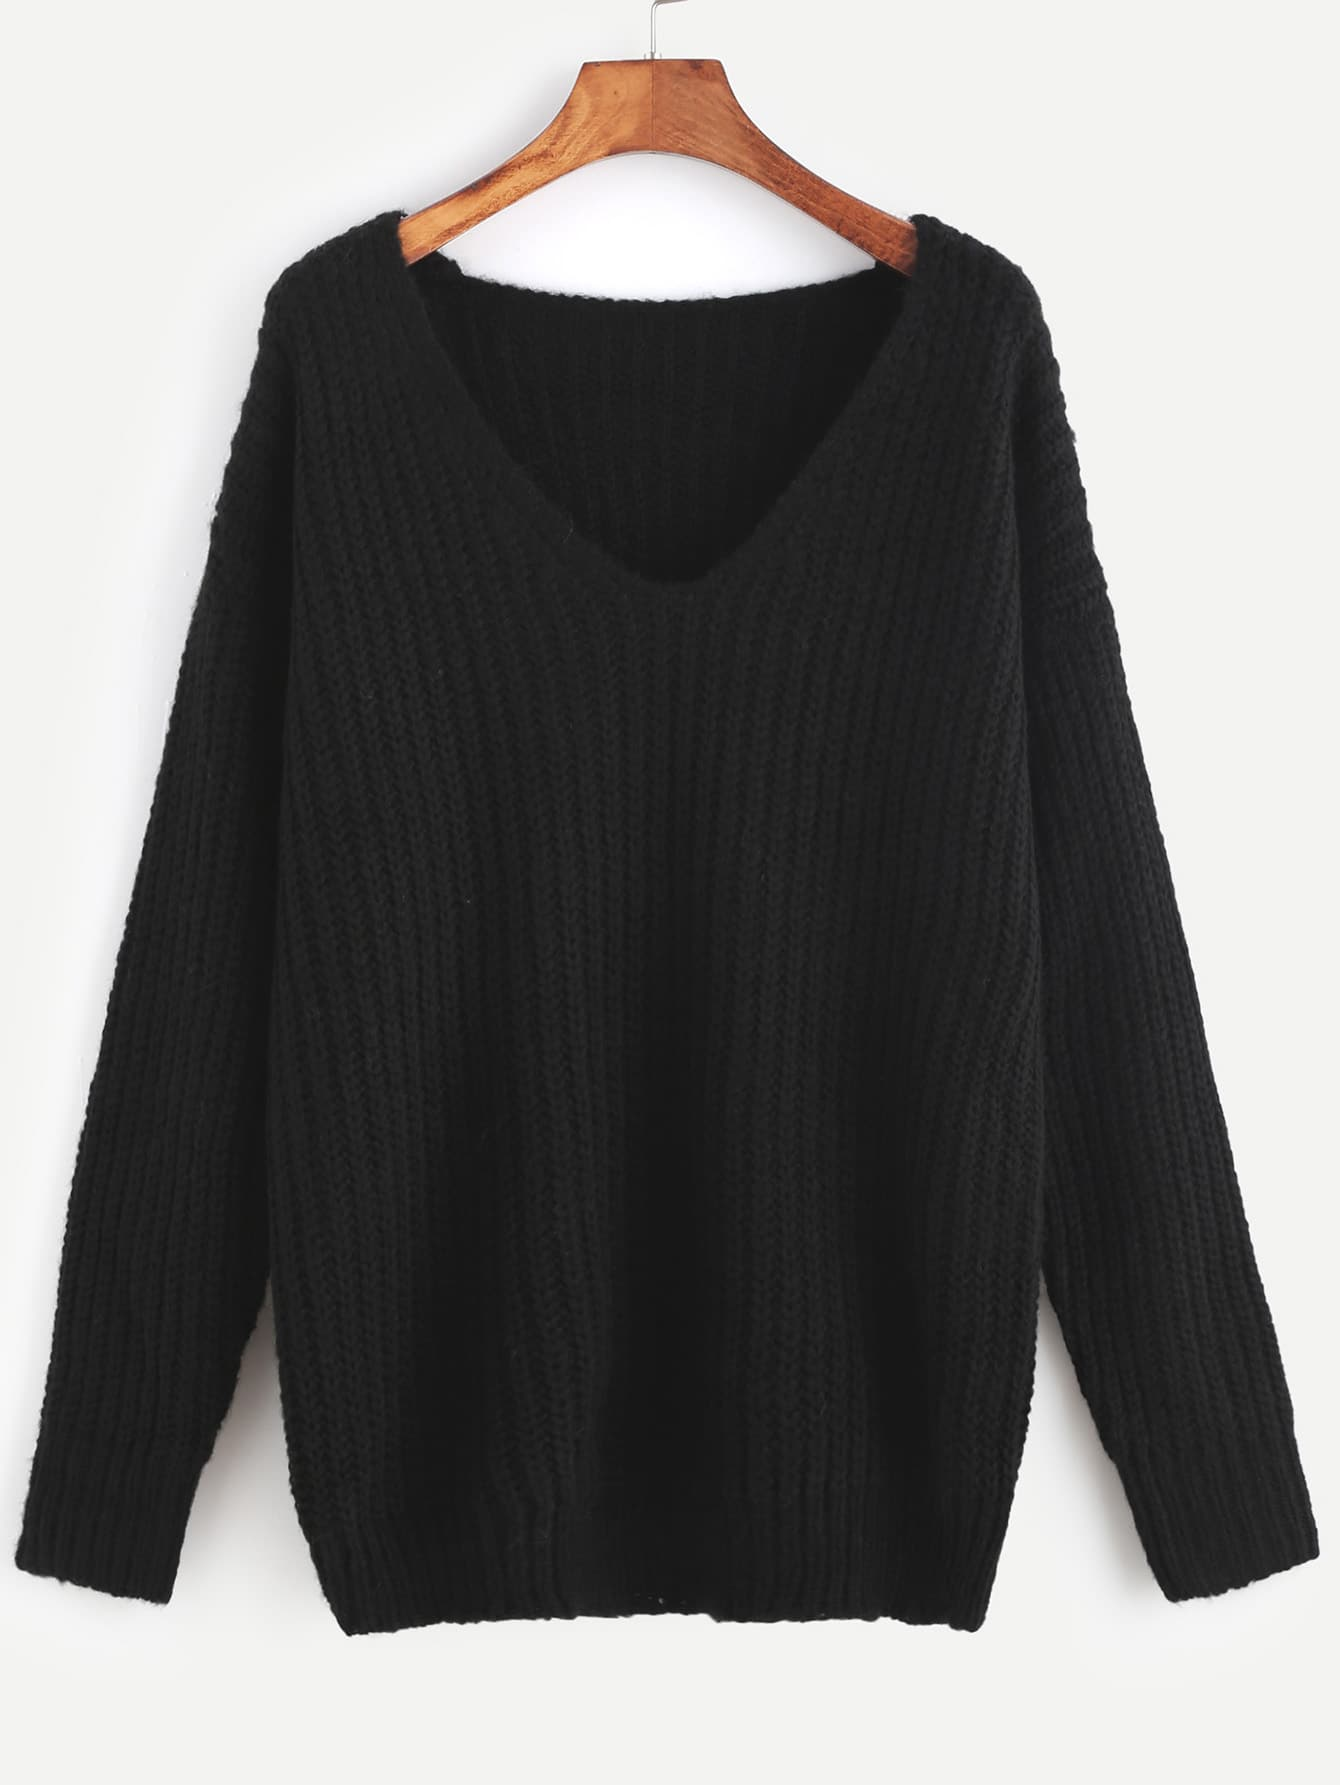 Black Ribbed Knit V Neck Drop Shoulder Sweater